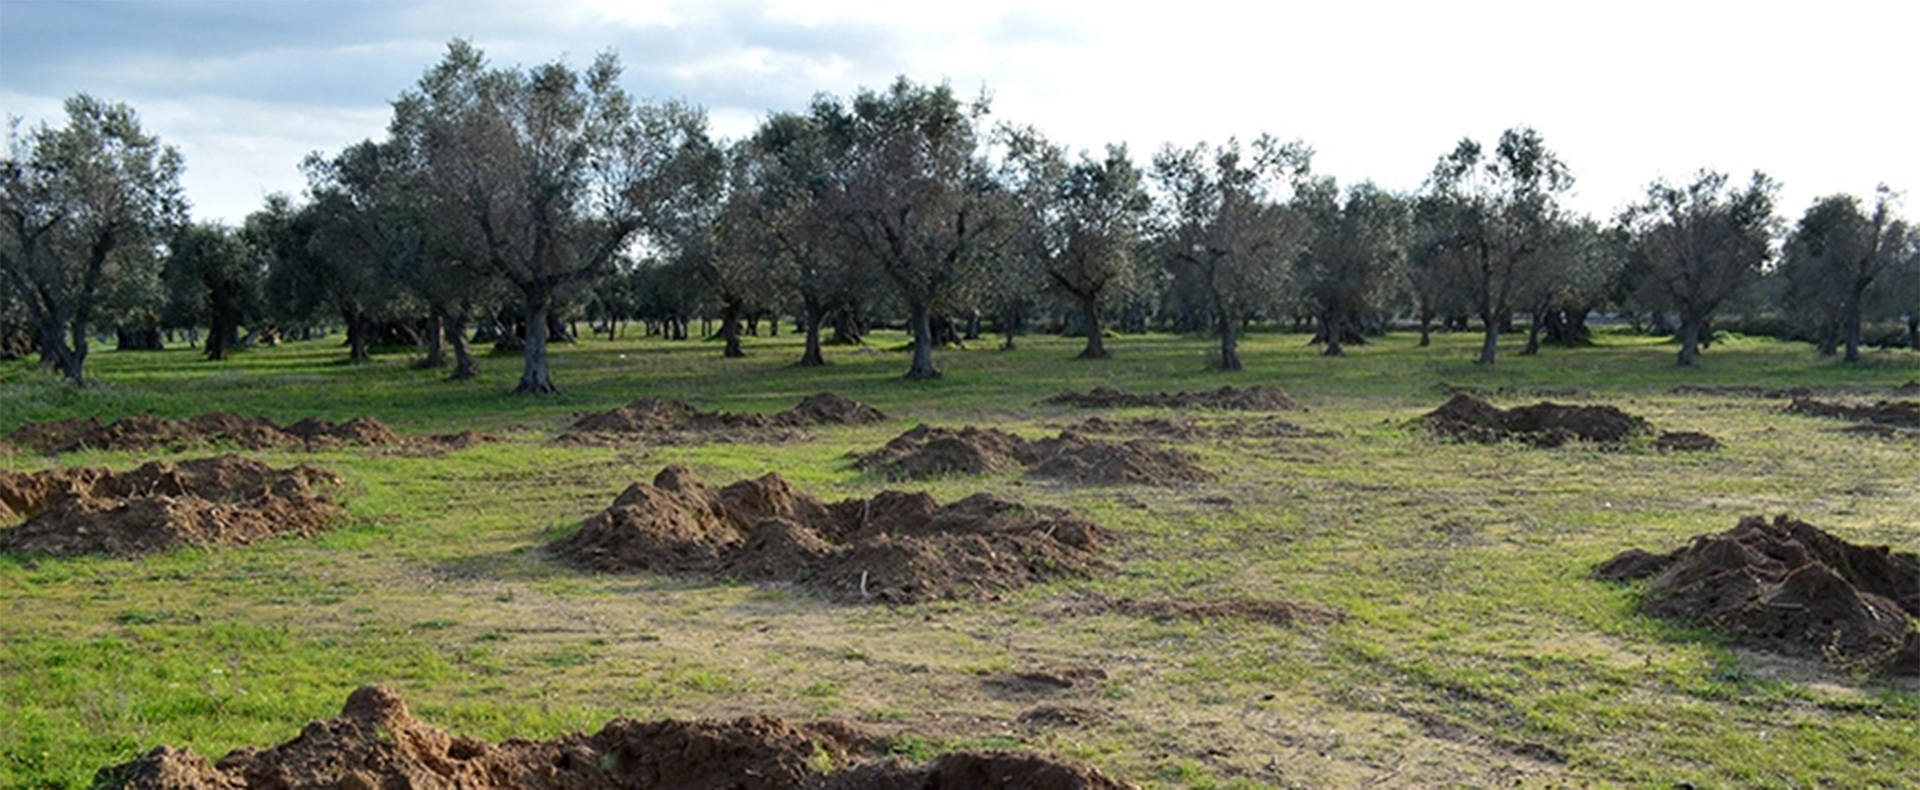 CBS Sunday Morning covers the ongoing olive oil crisis in Salento